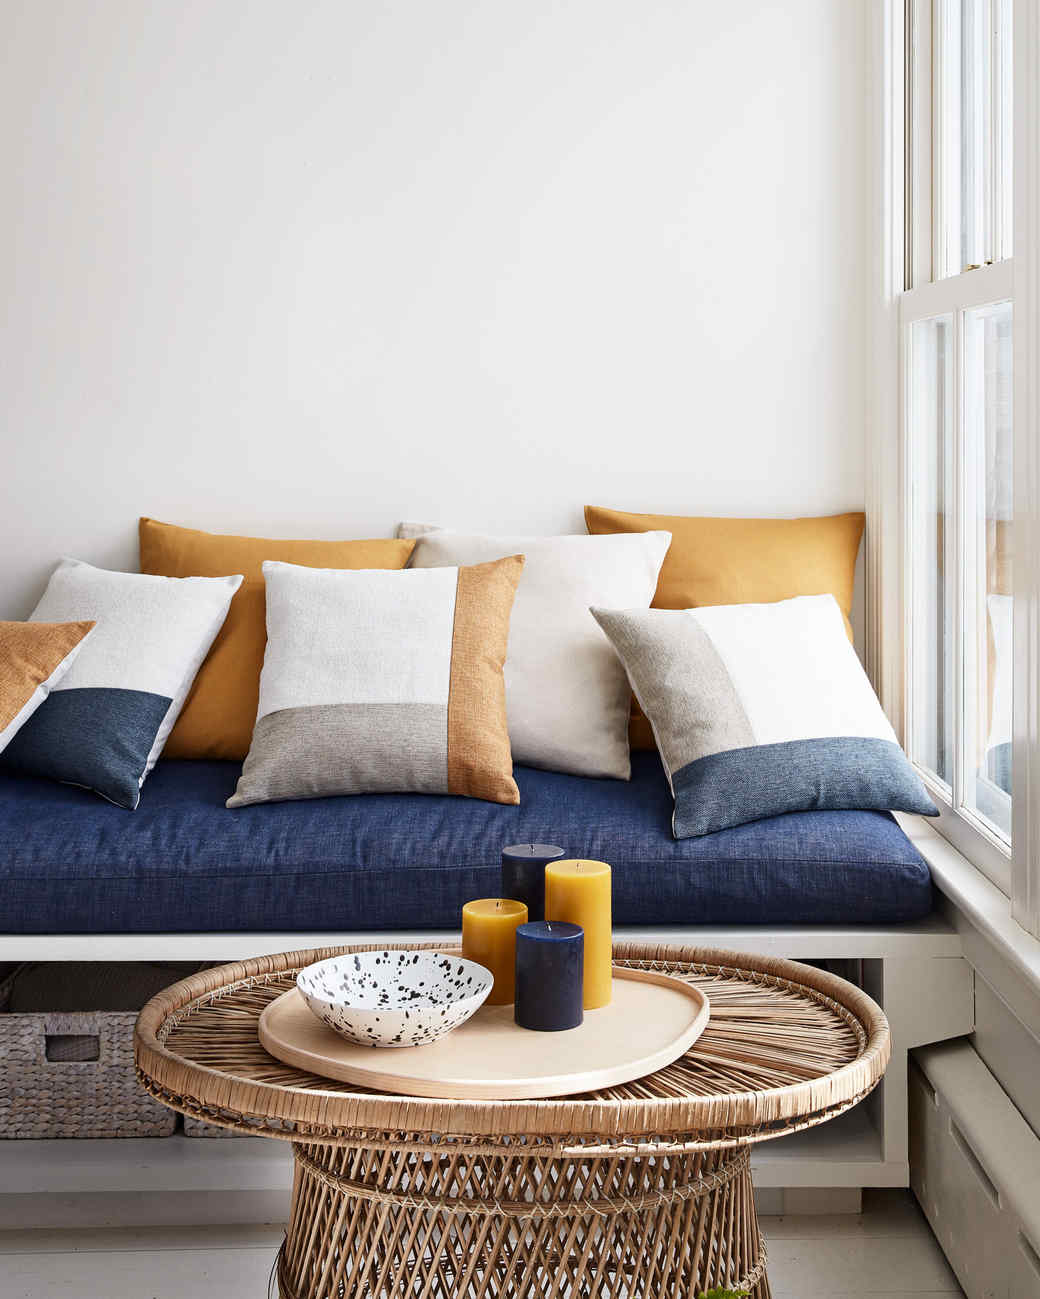 blue orange and white color block throw pillows